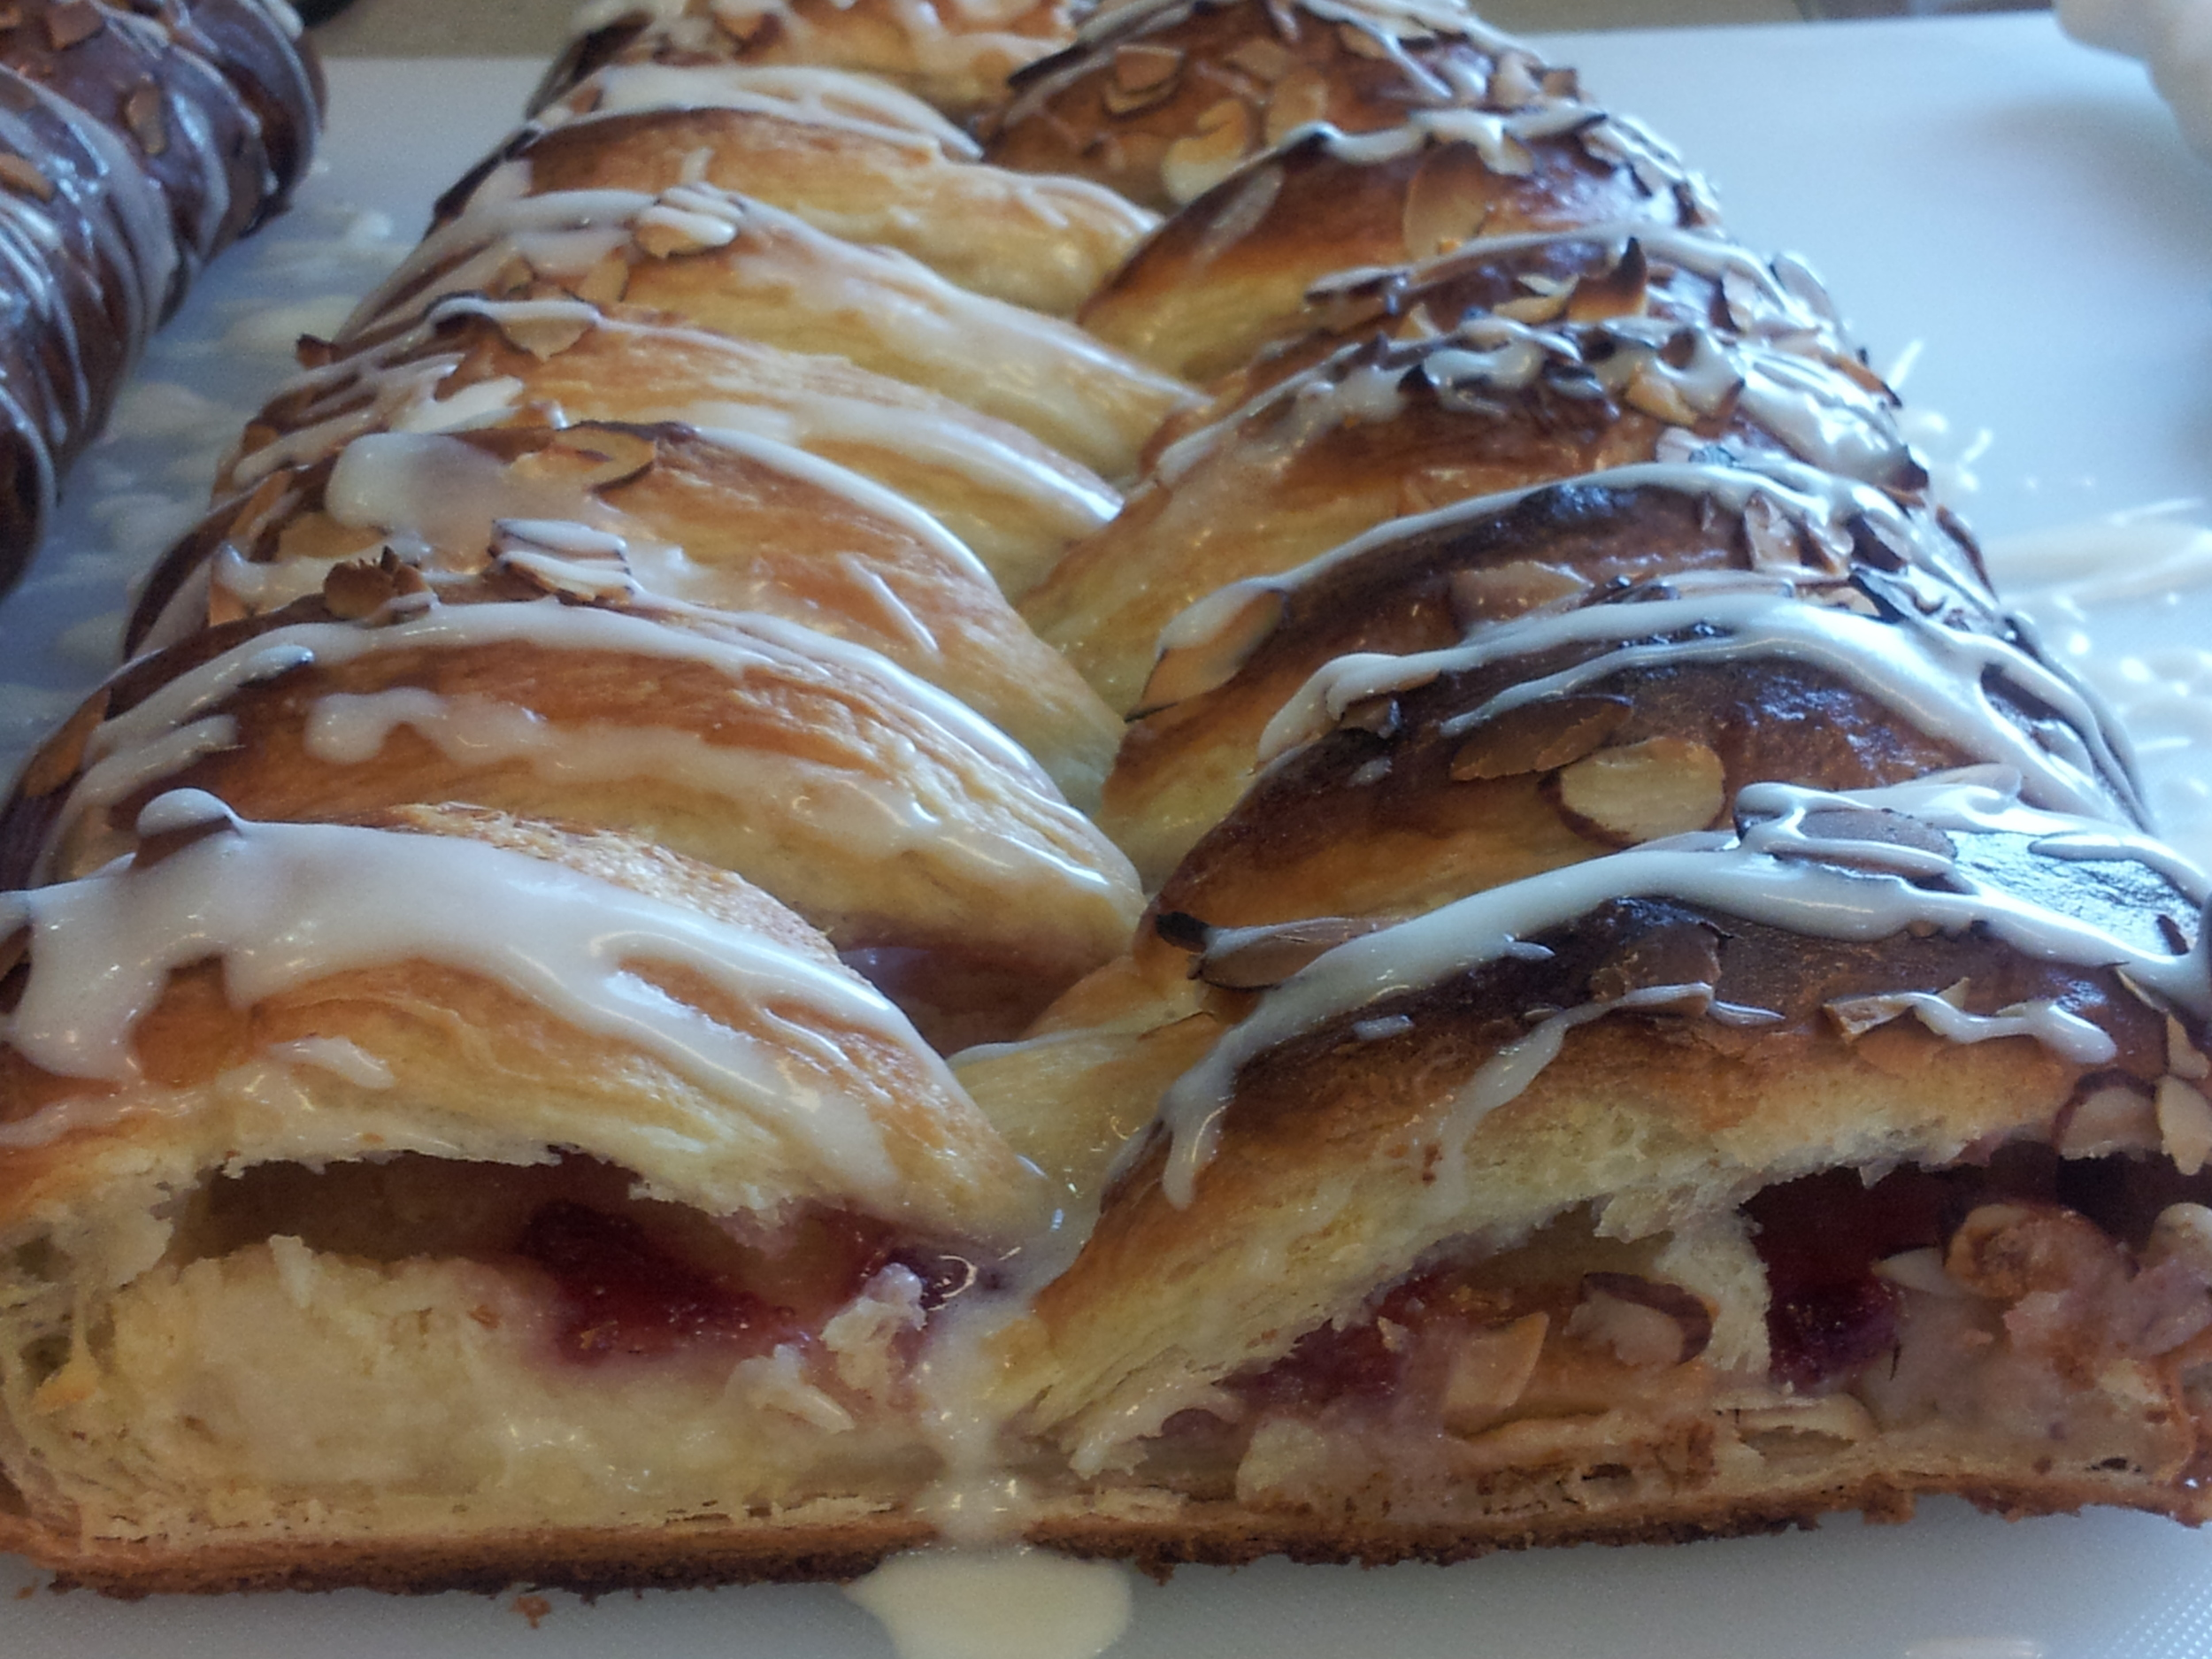 Strawberry Cream Cheese Braid. Photo by A. Doughty